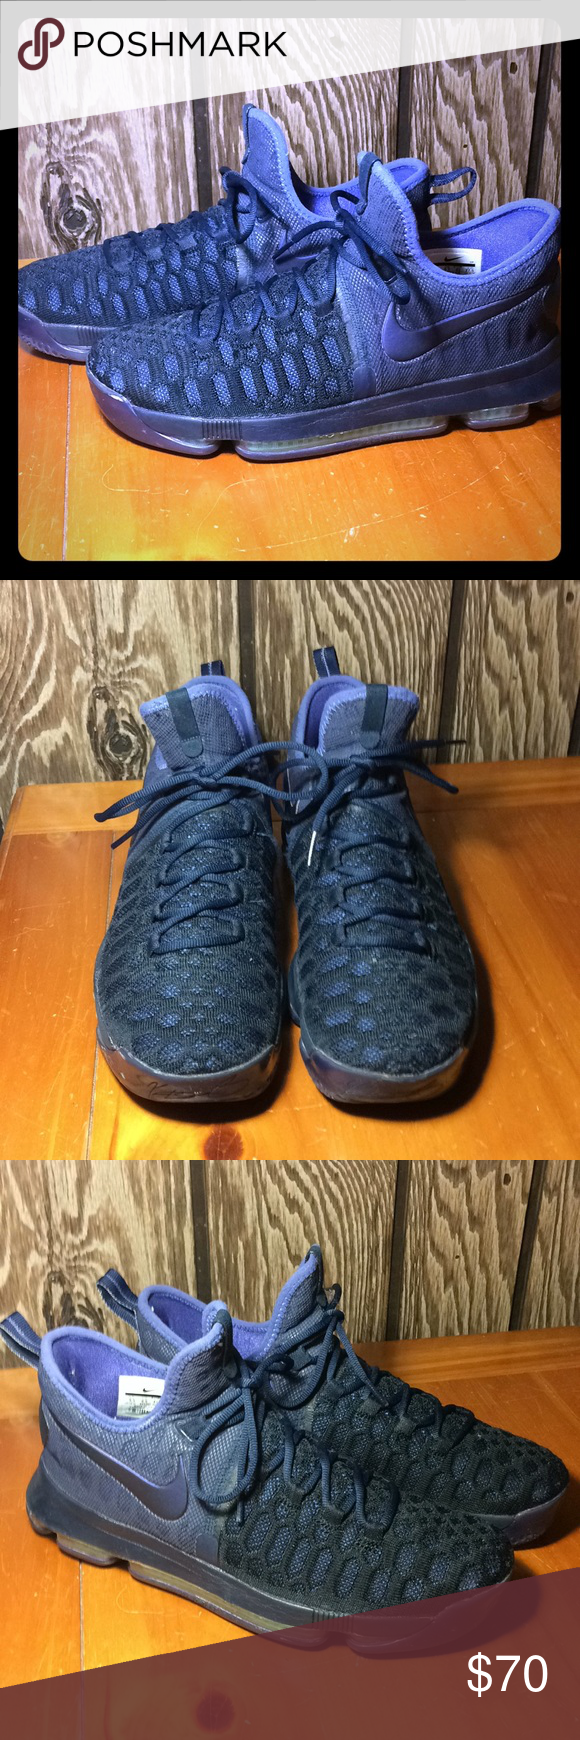 6216fb3fe21a ... reduced nike zoom kd 9 obsidian dark purple dust size 9.5 these are  still the best